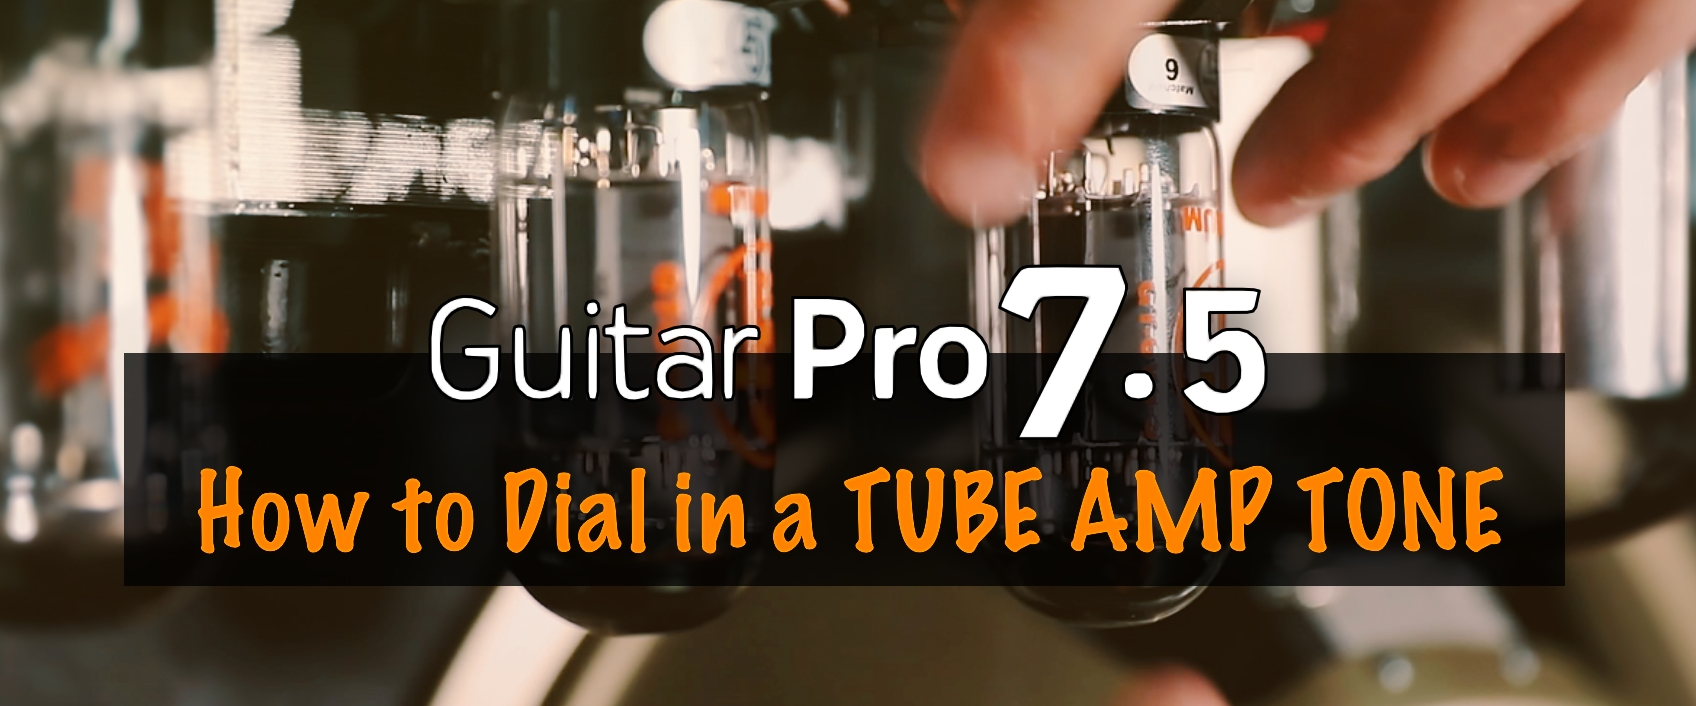 Mimicking a Tube Amp Tone in Guitar Pro